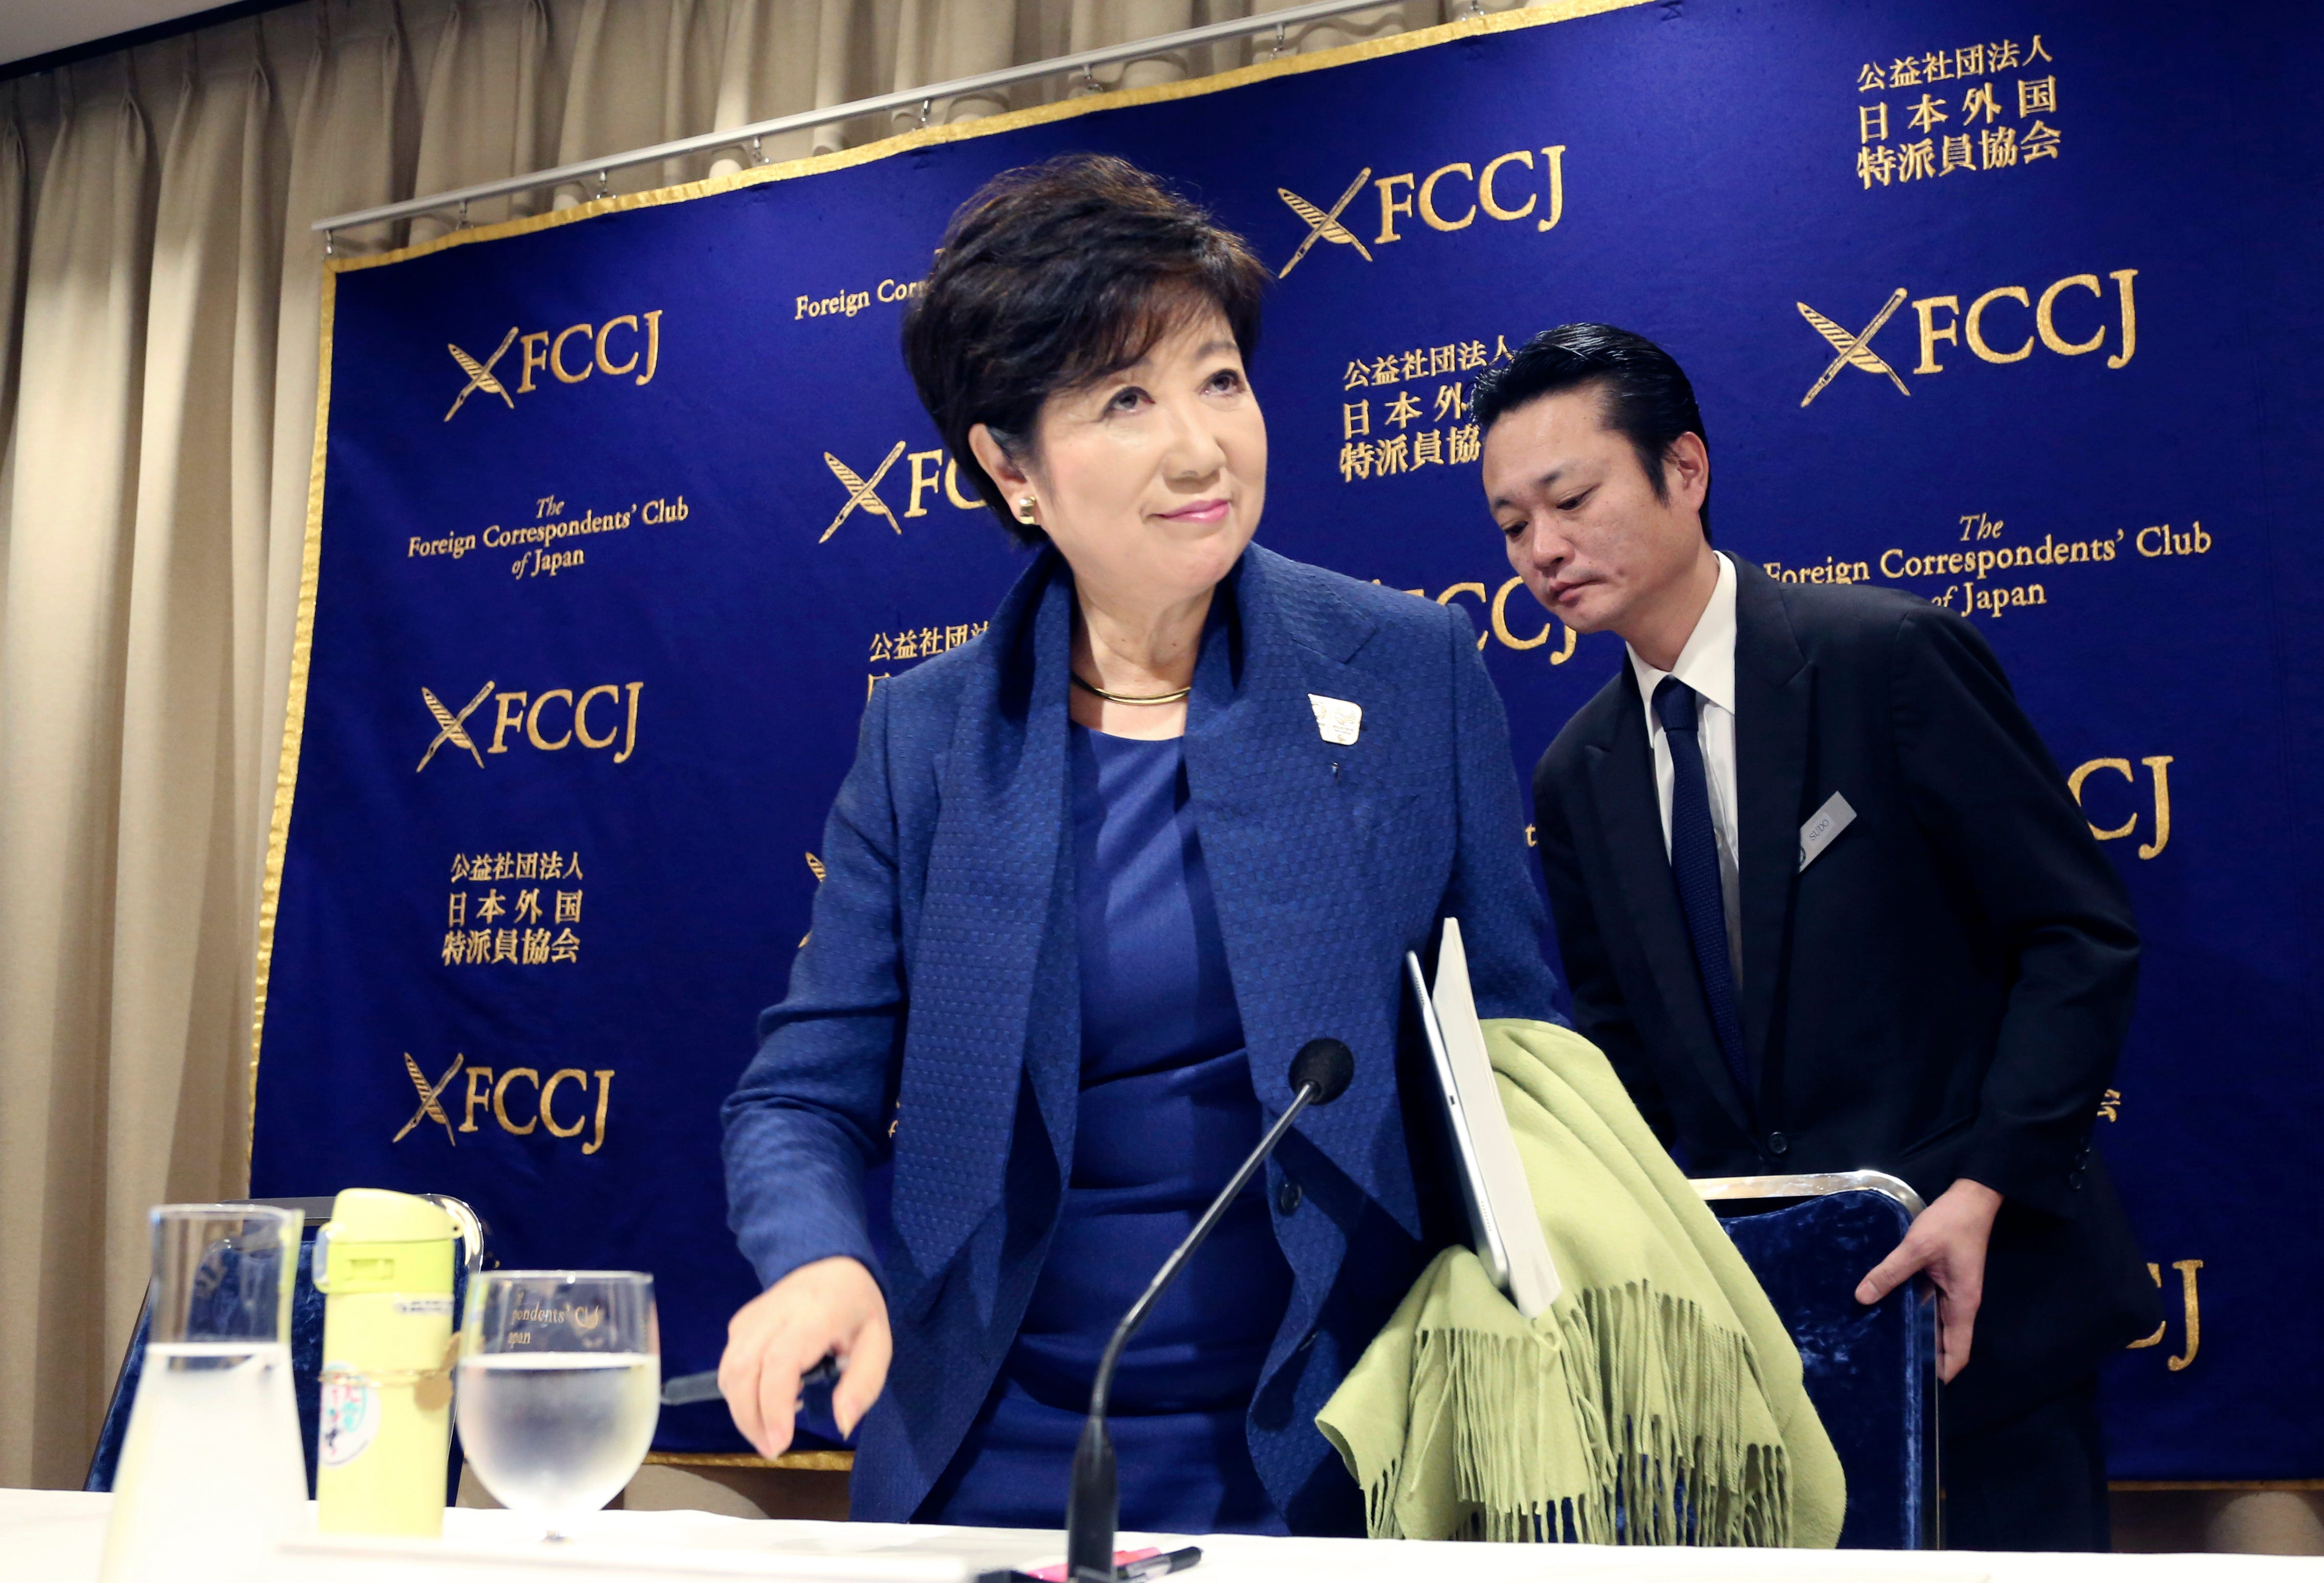 Tokyo governor won't speculate on Olympic bribery scandal